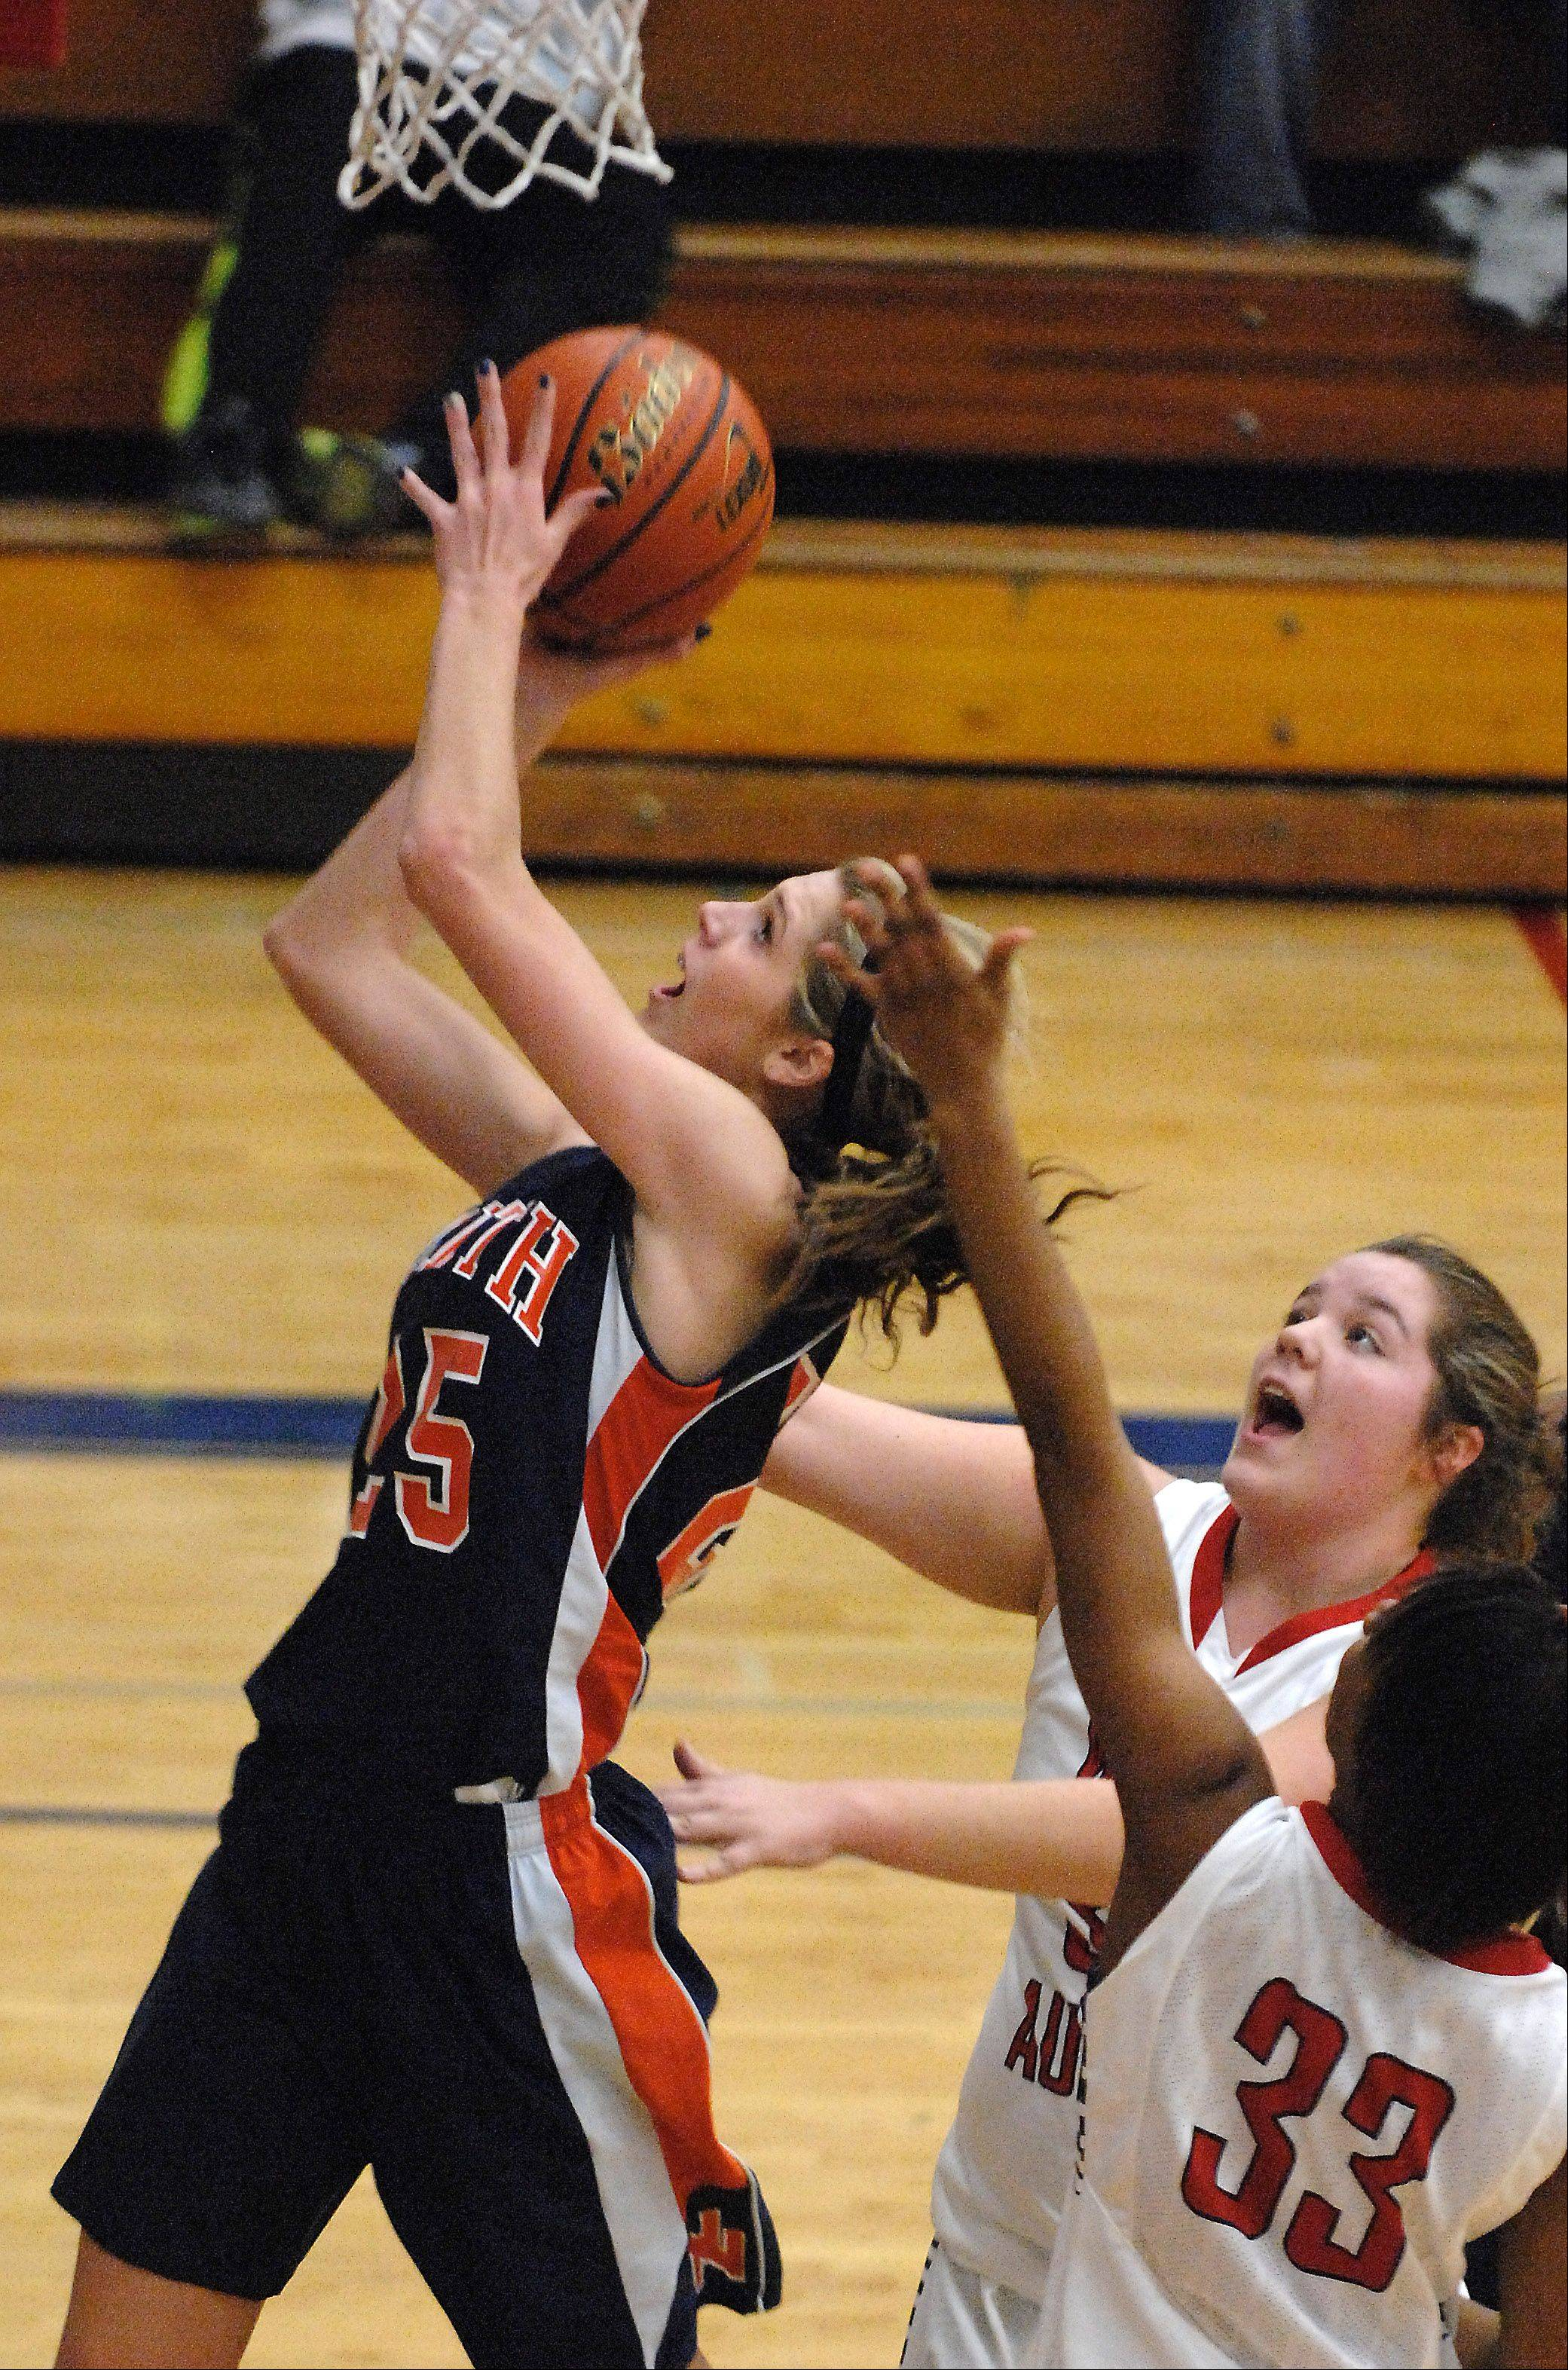 Naperville North's Kayla Sharples scores past two West Aurora defenders.